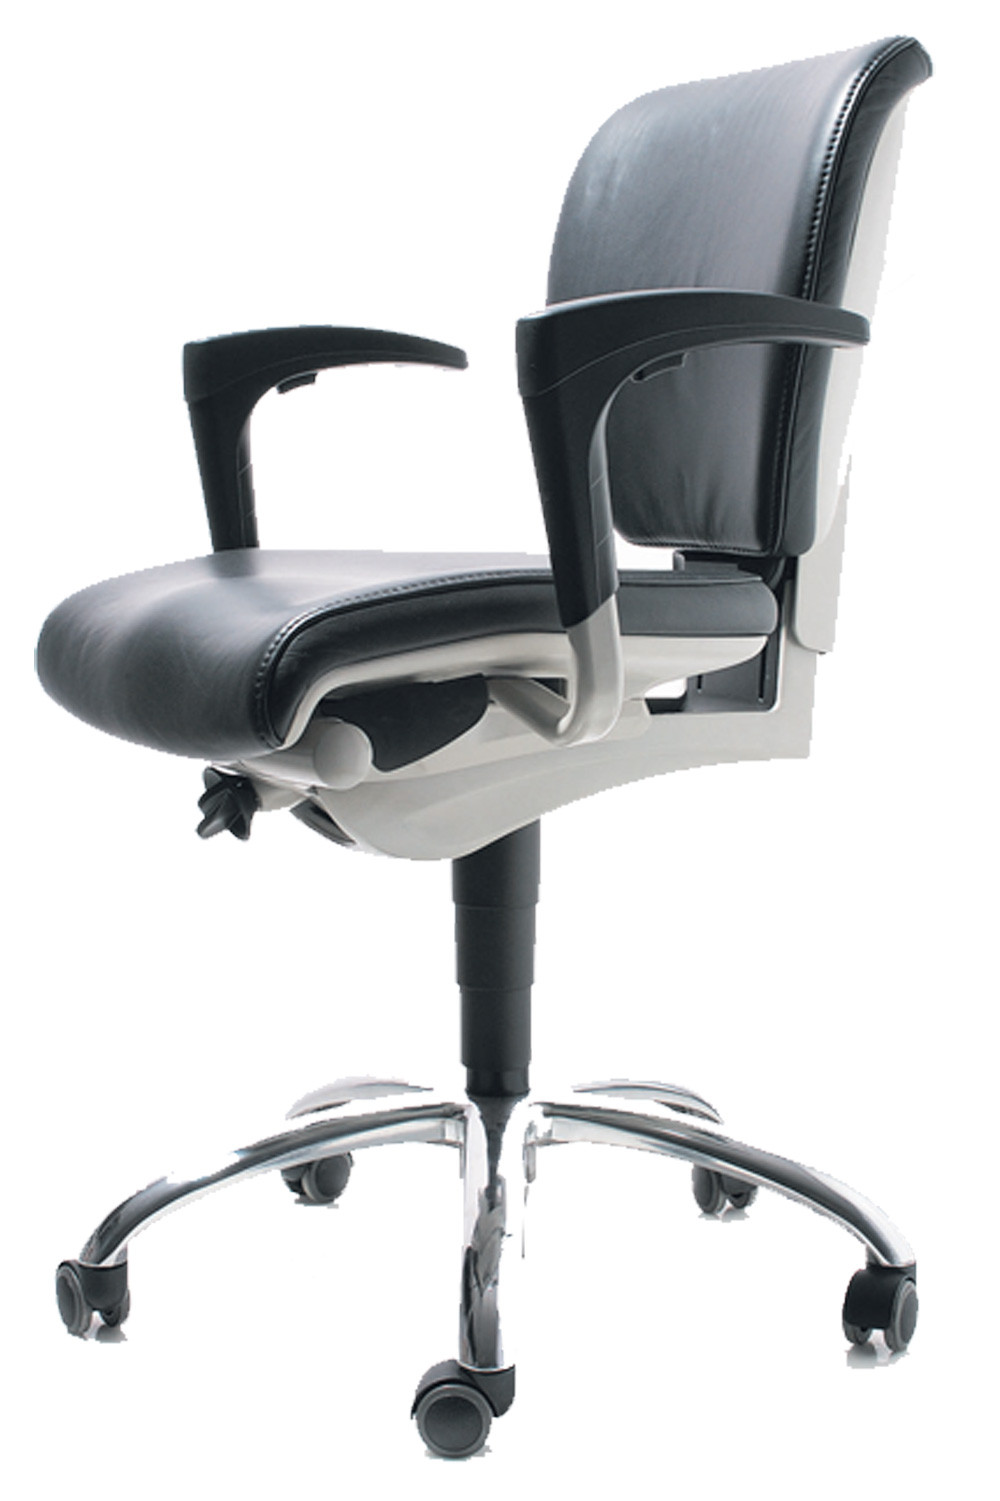 Fabulous Sensit The Comfortable Lab Equipment And Office Chair Ibusinesslaw Wood Chair Design Ideas Ibusinesslaworg